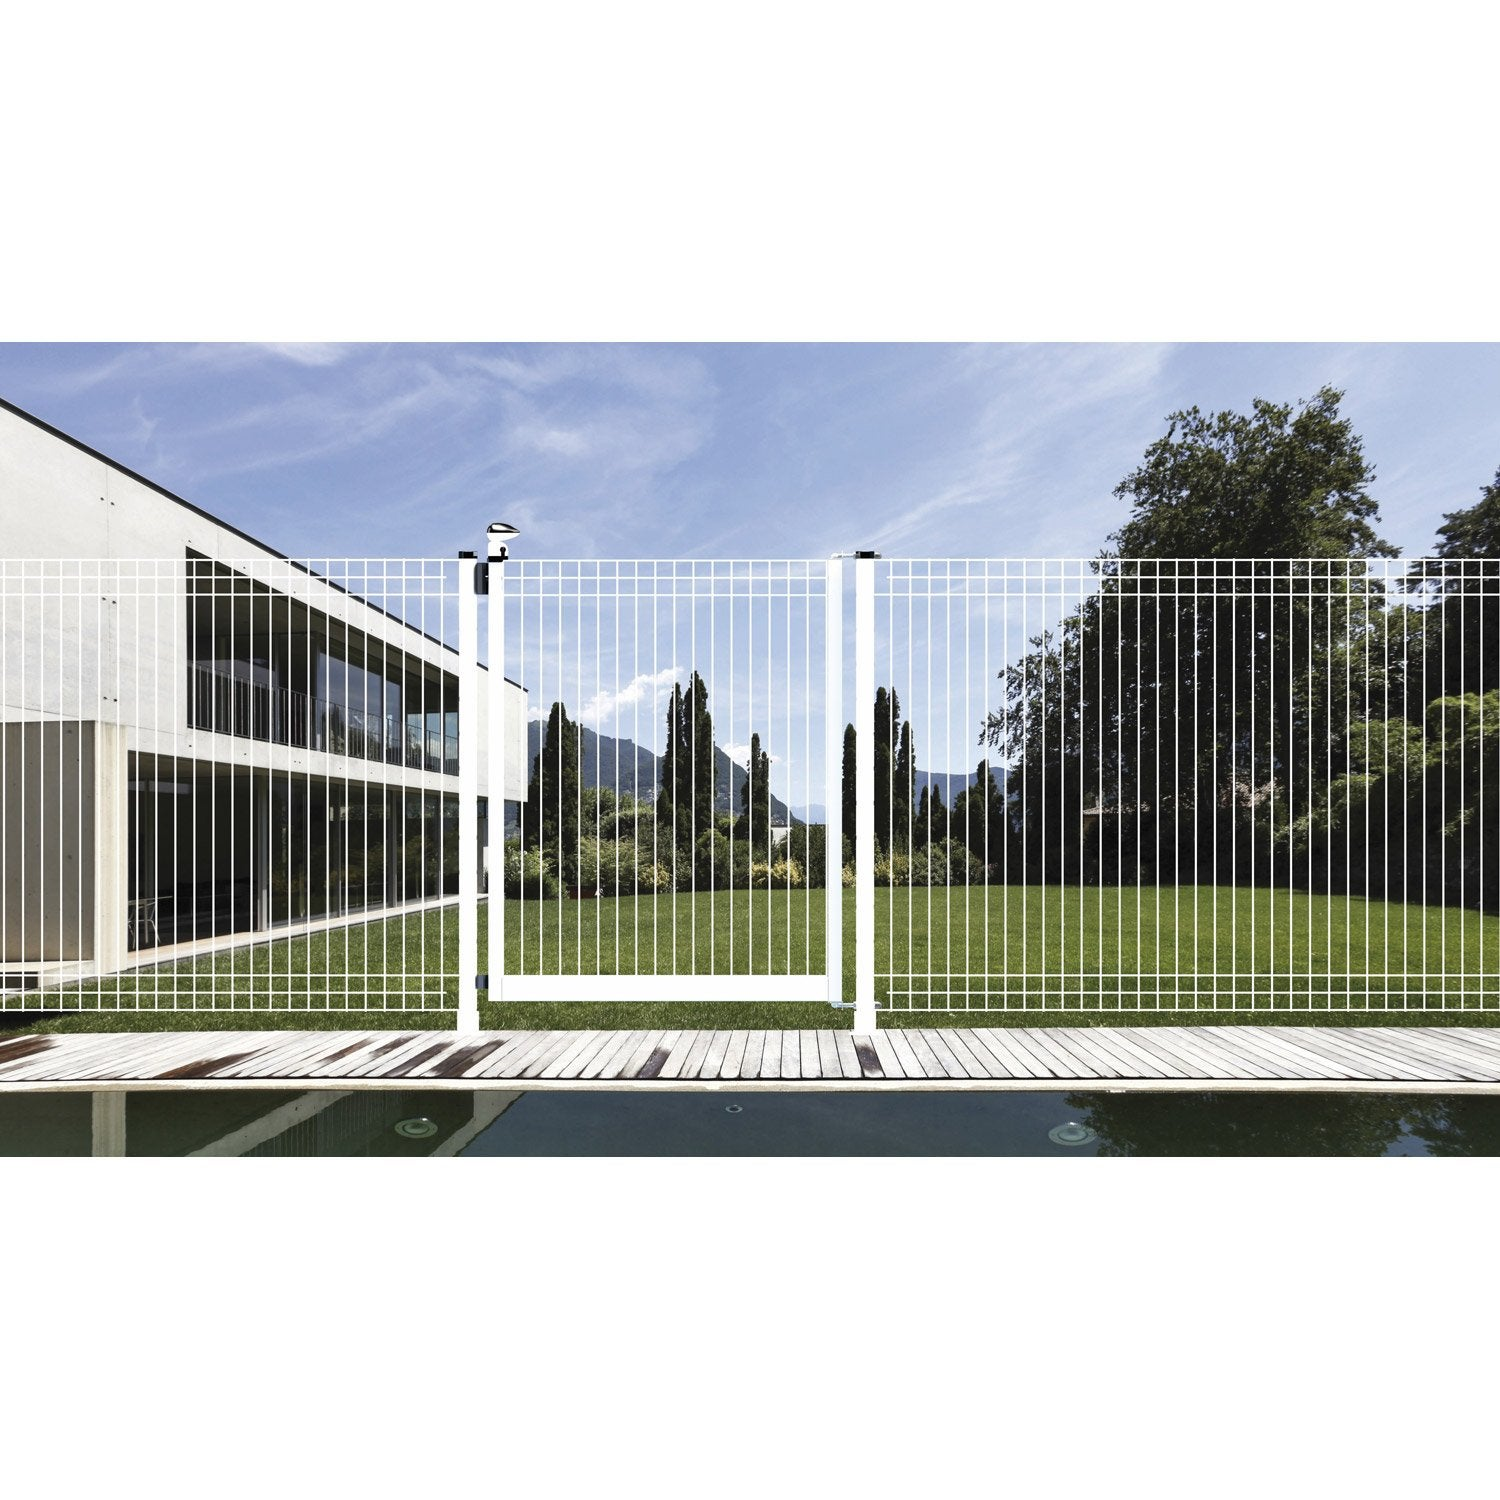 Cloture piscine cloture piscine with cloture piscine for Portillon piscine verre